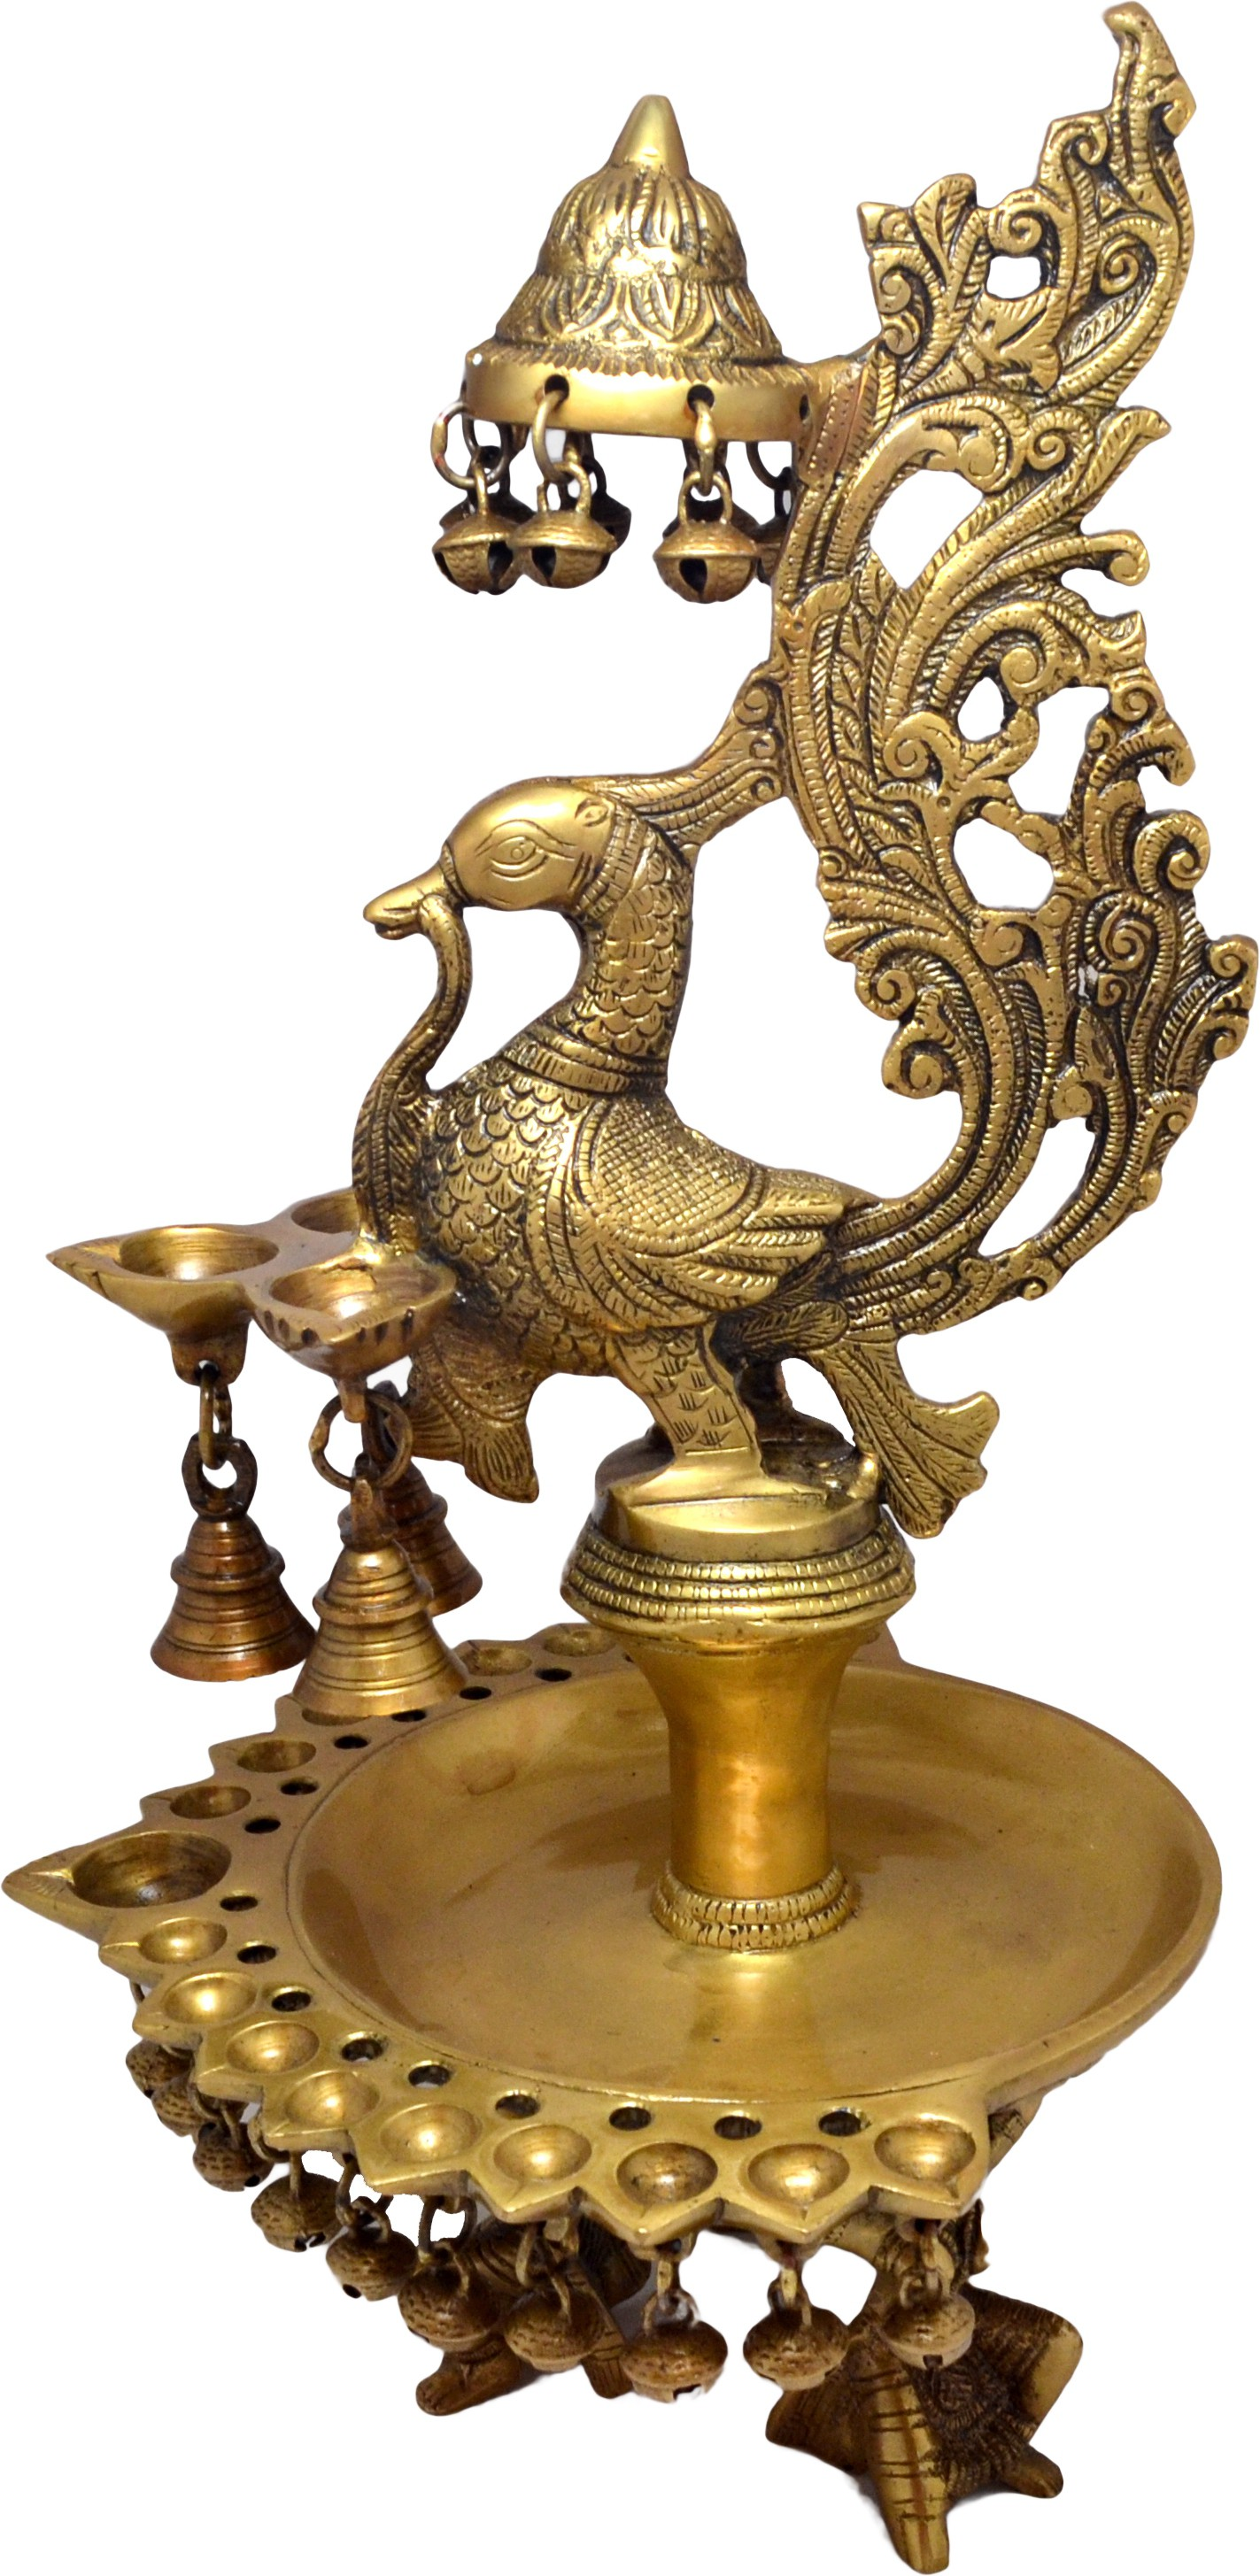 Handecor Peacock Design Oil Lamp Held by 3 Ladies Brass Table Diya(Height: 16 inch)